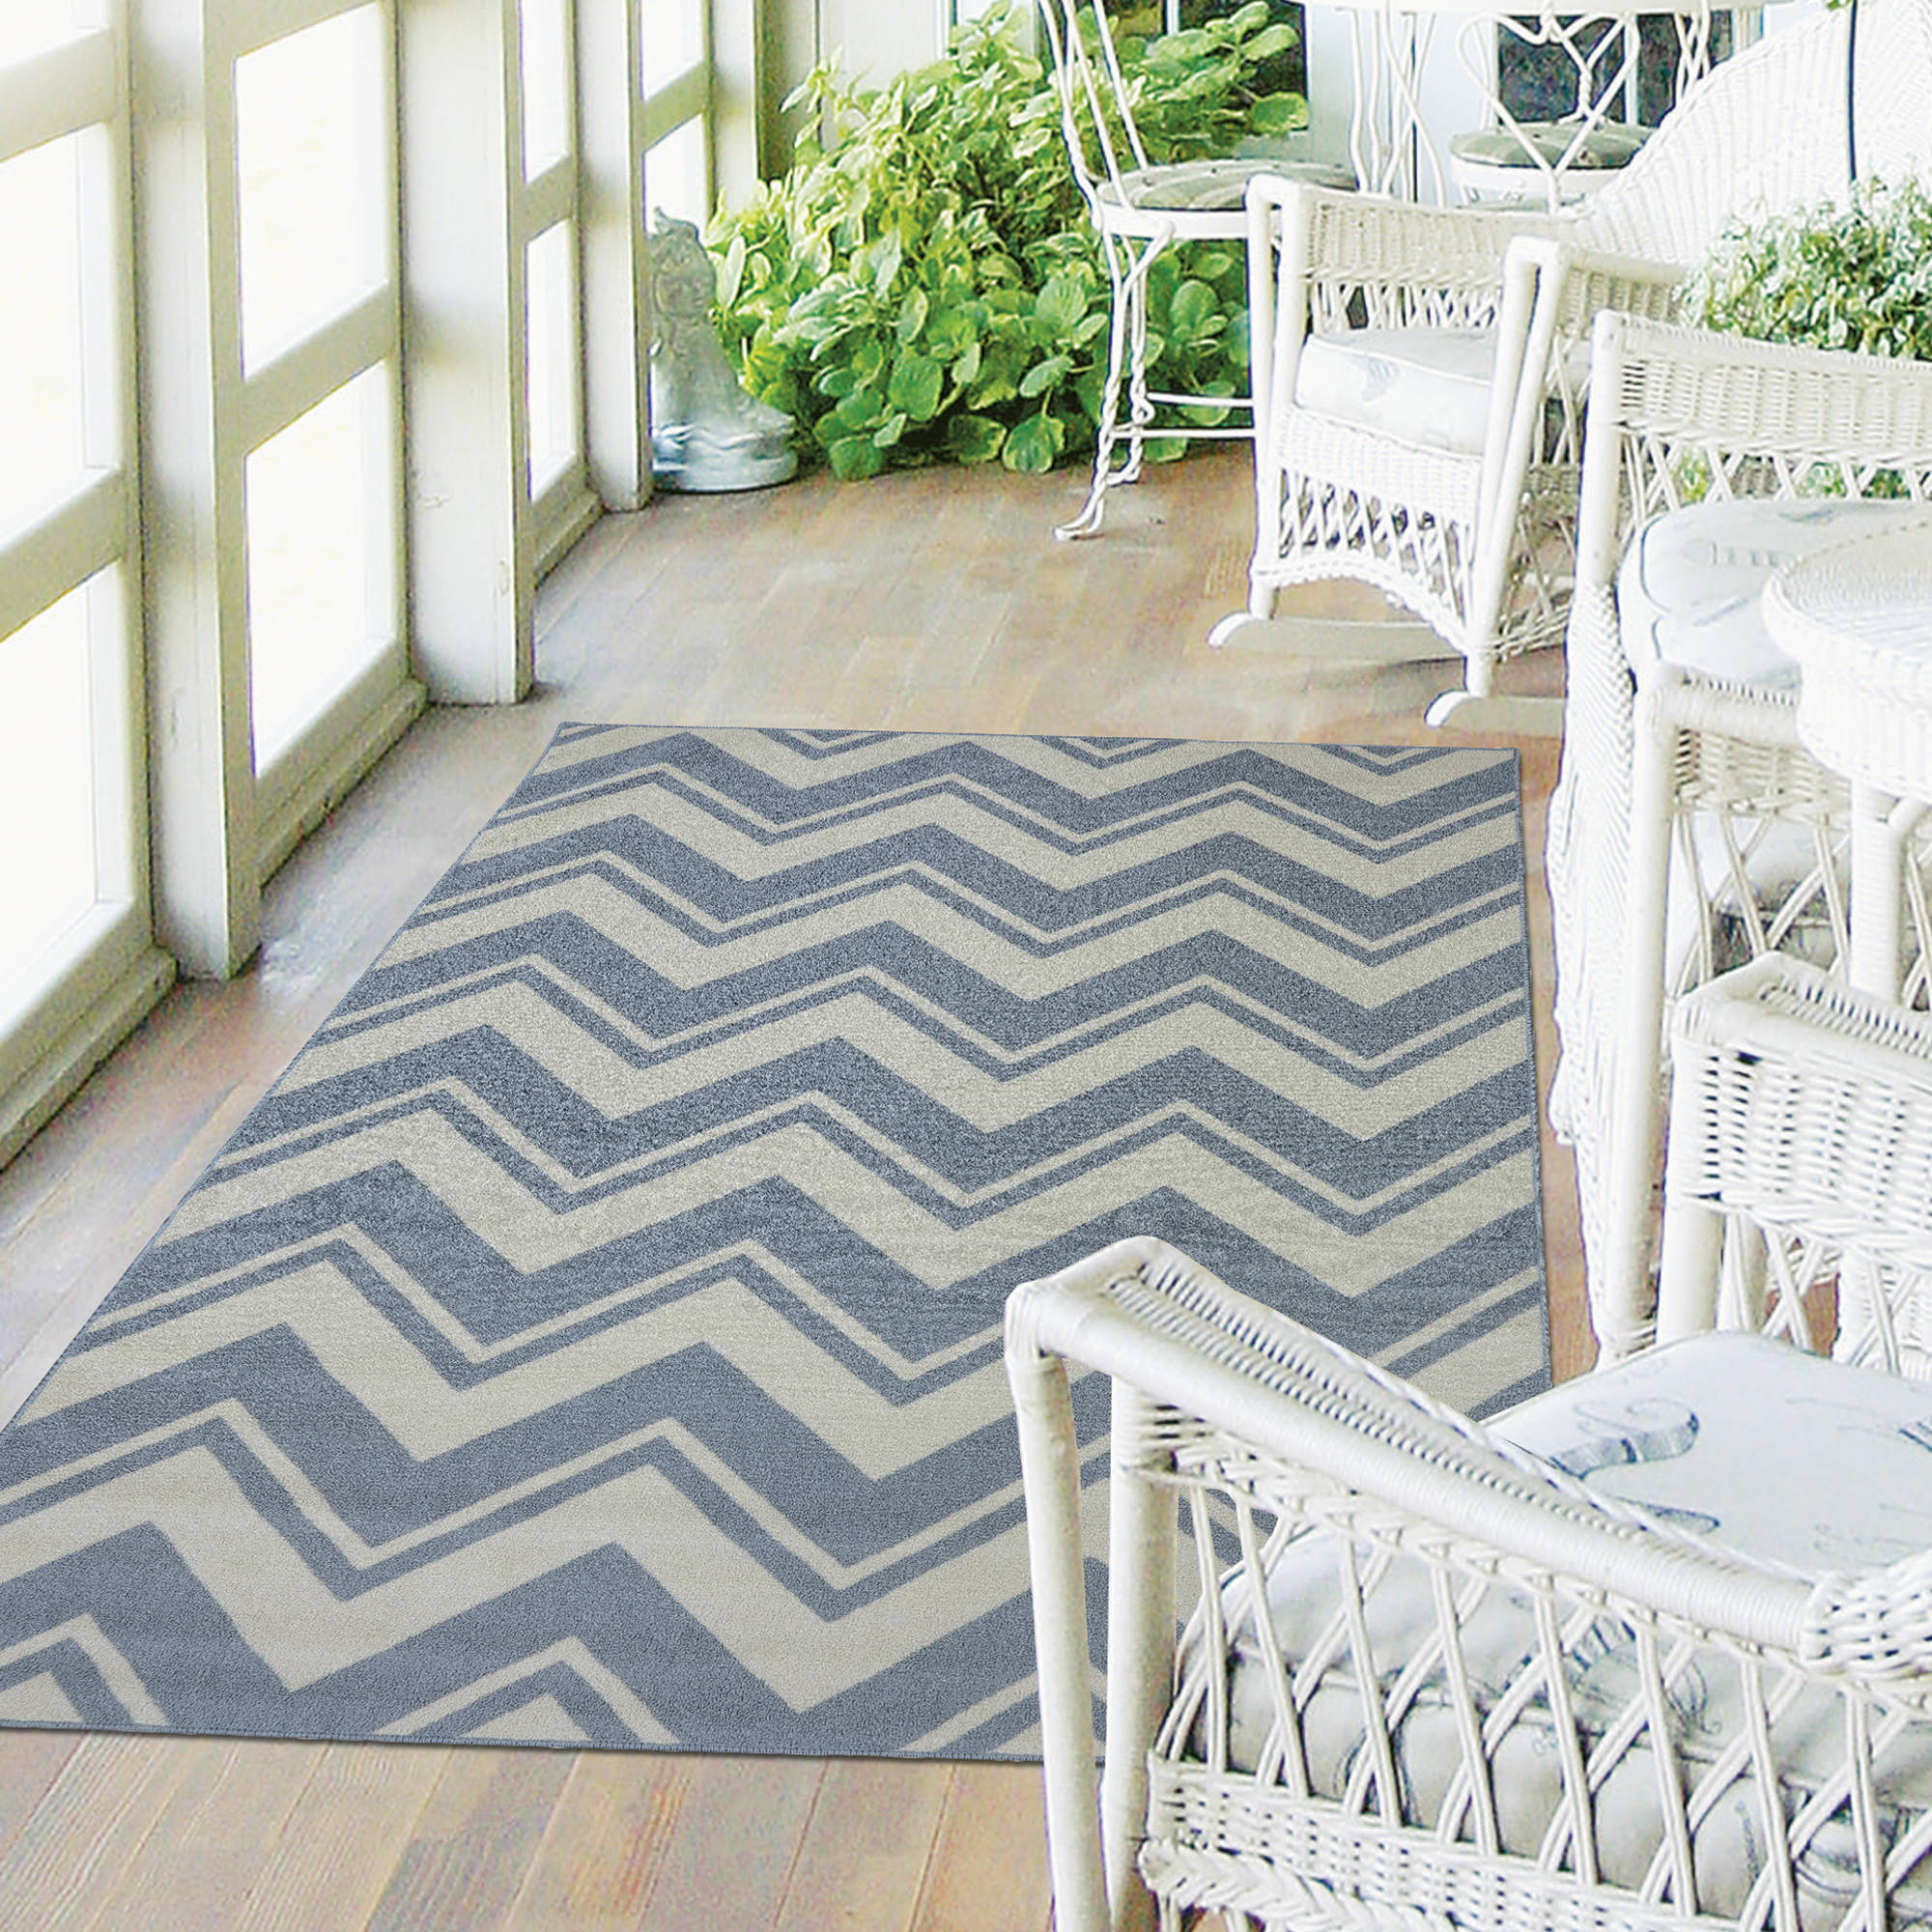 Mohawk Home Pool Zig Zag Indoor/Outdoor Nylon Rug, Blue - Walmart.com